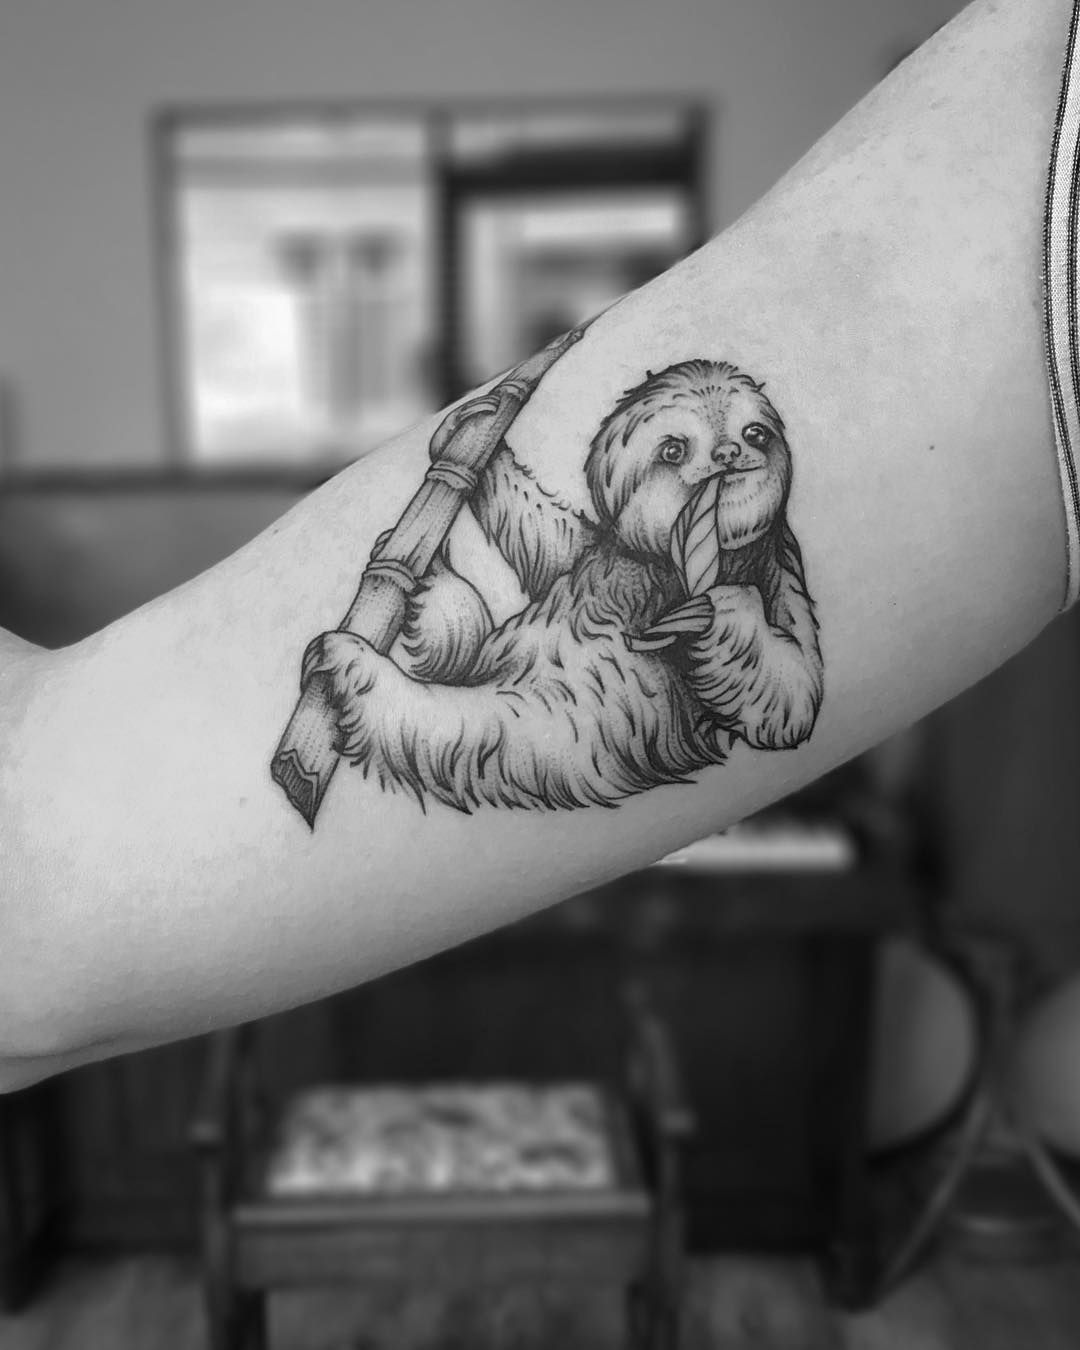 Pin By Tiffany Tuite On Body Modification Sloth Tattoo Full Sleeve Tattoos Tattoos